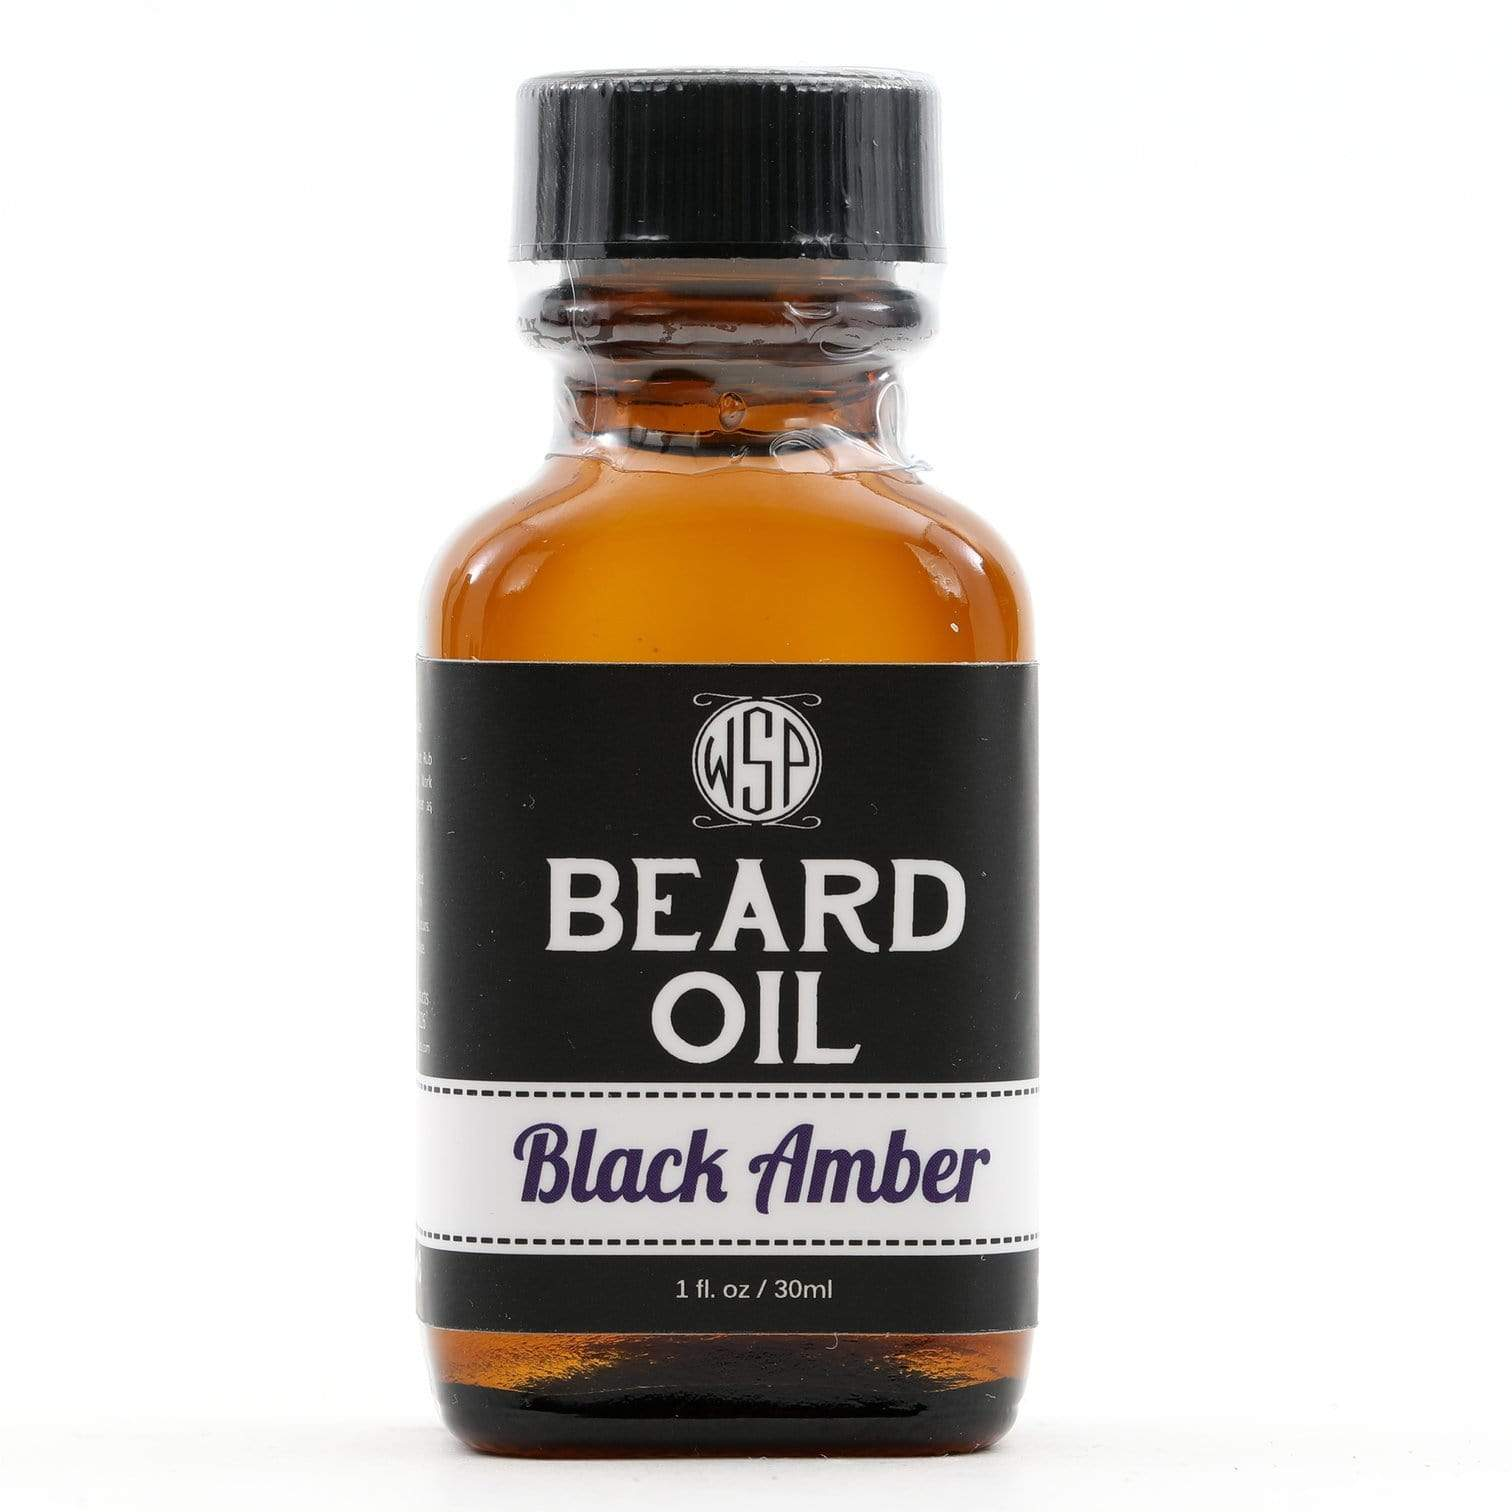 Black Amber Beard Oil 1 oz.